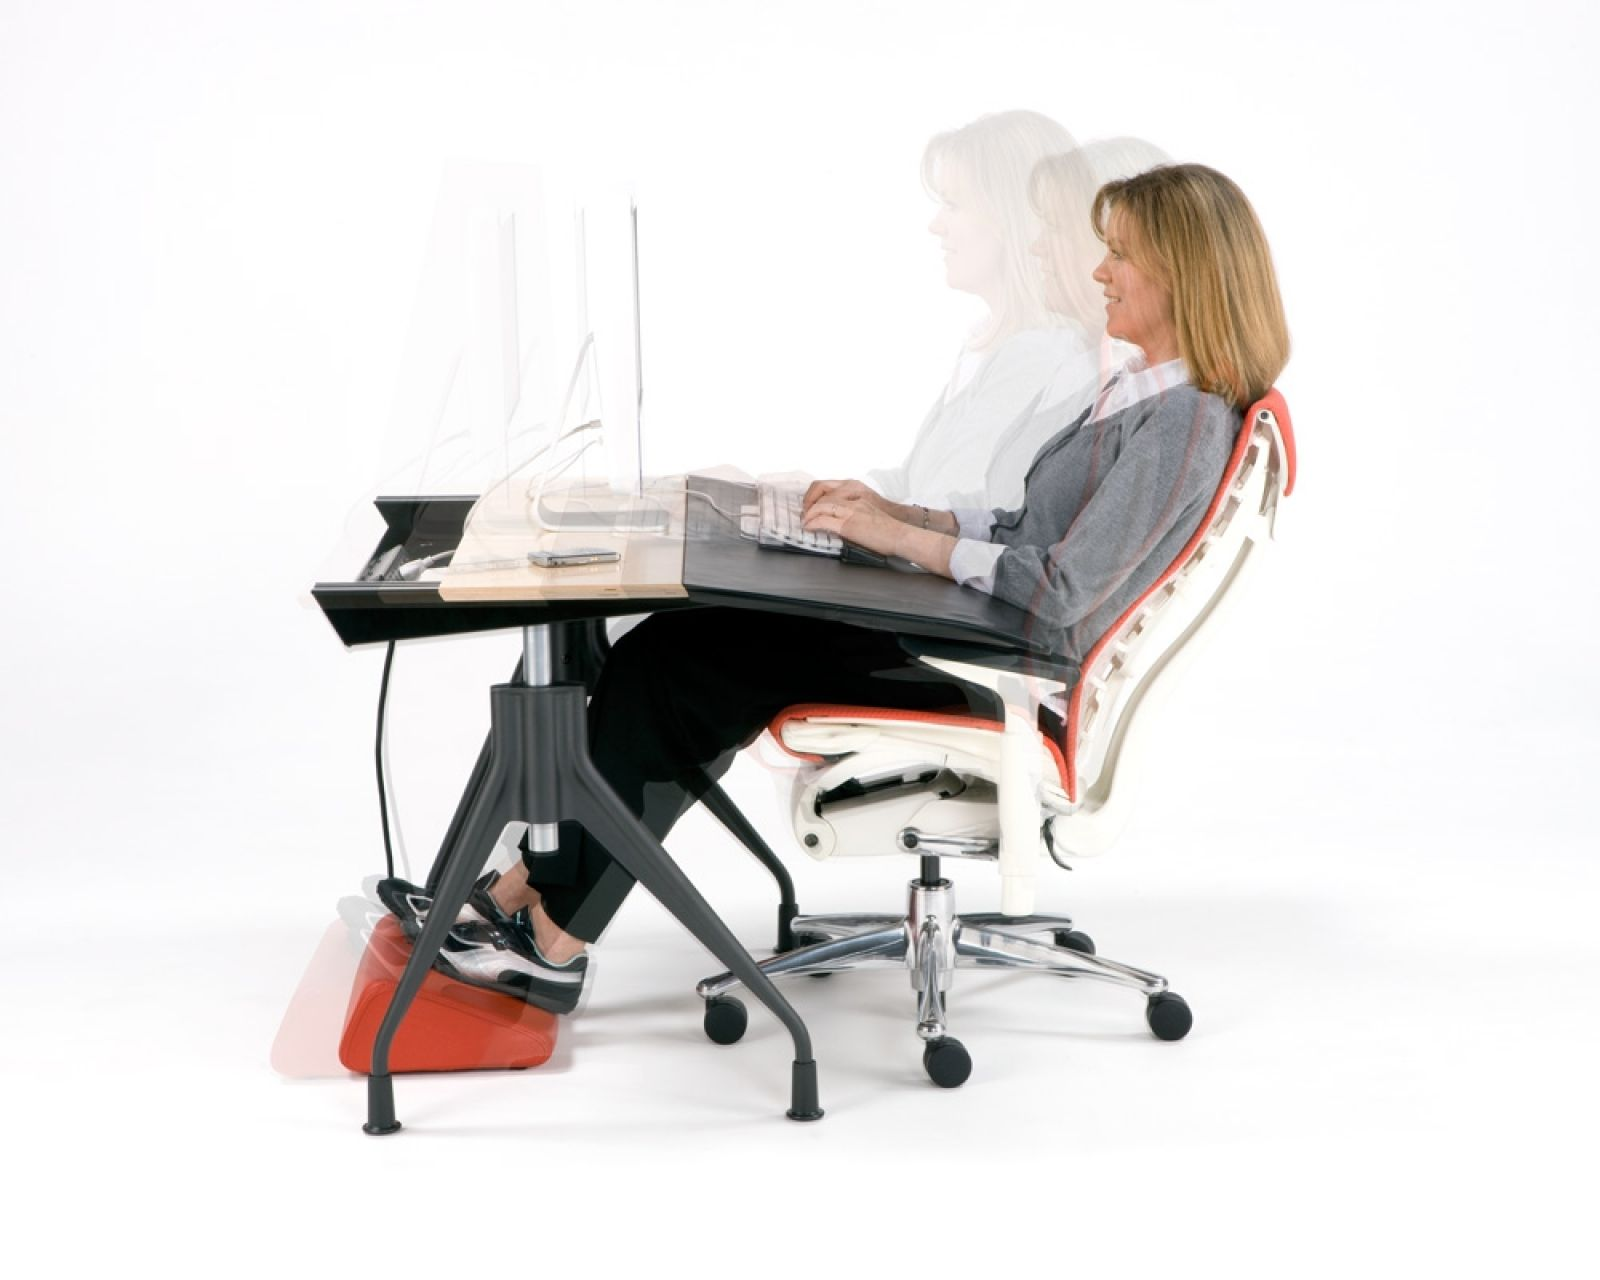 Ergonomic puter Desk And Chair Design For Work